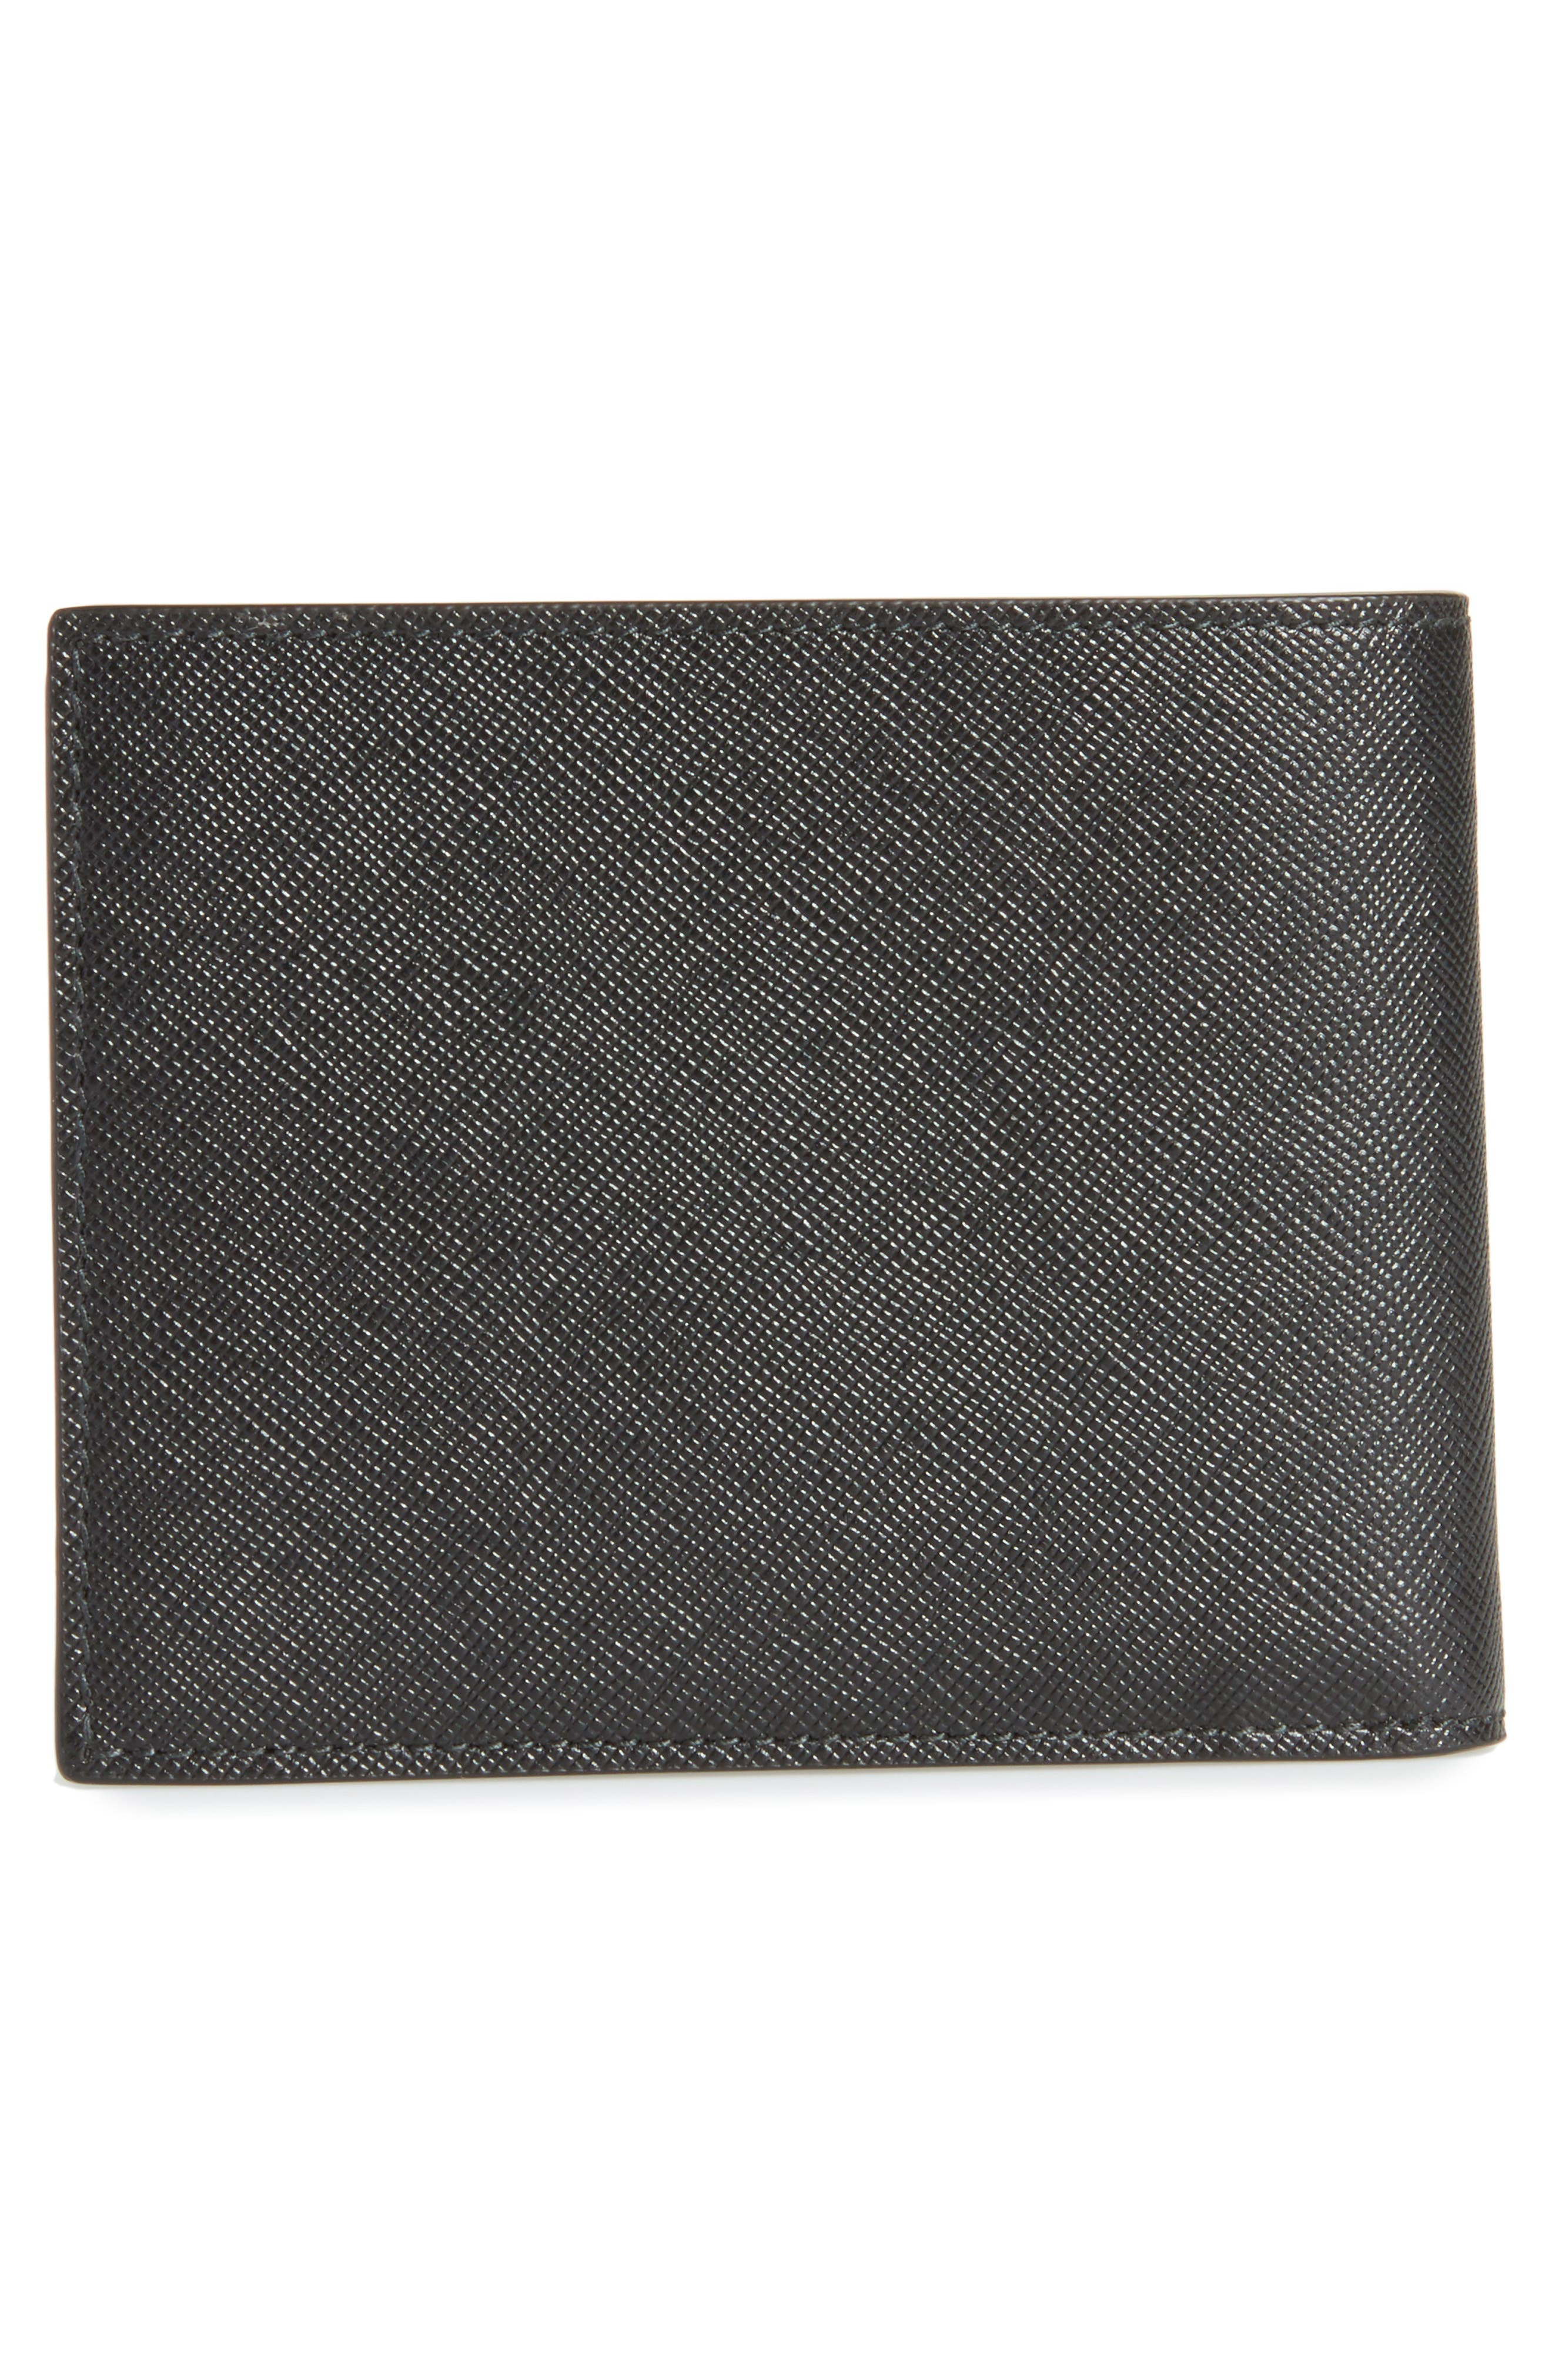 MONTBLANC, Sartorial Leather Bifold Wallet, Alternate thumbnail 3, color, BLACK